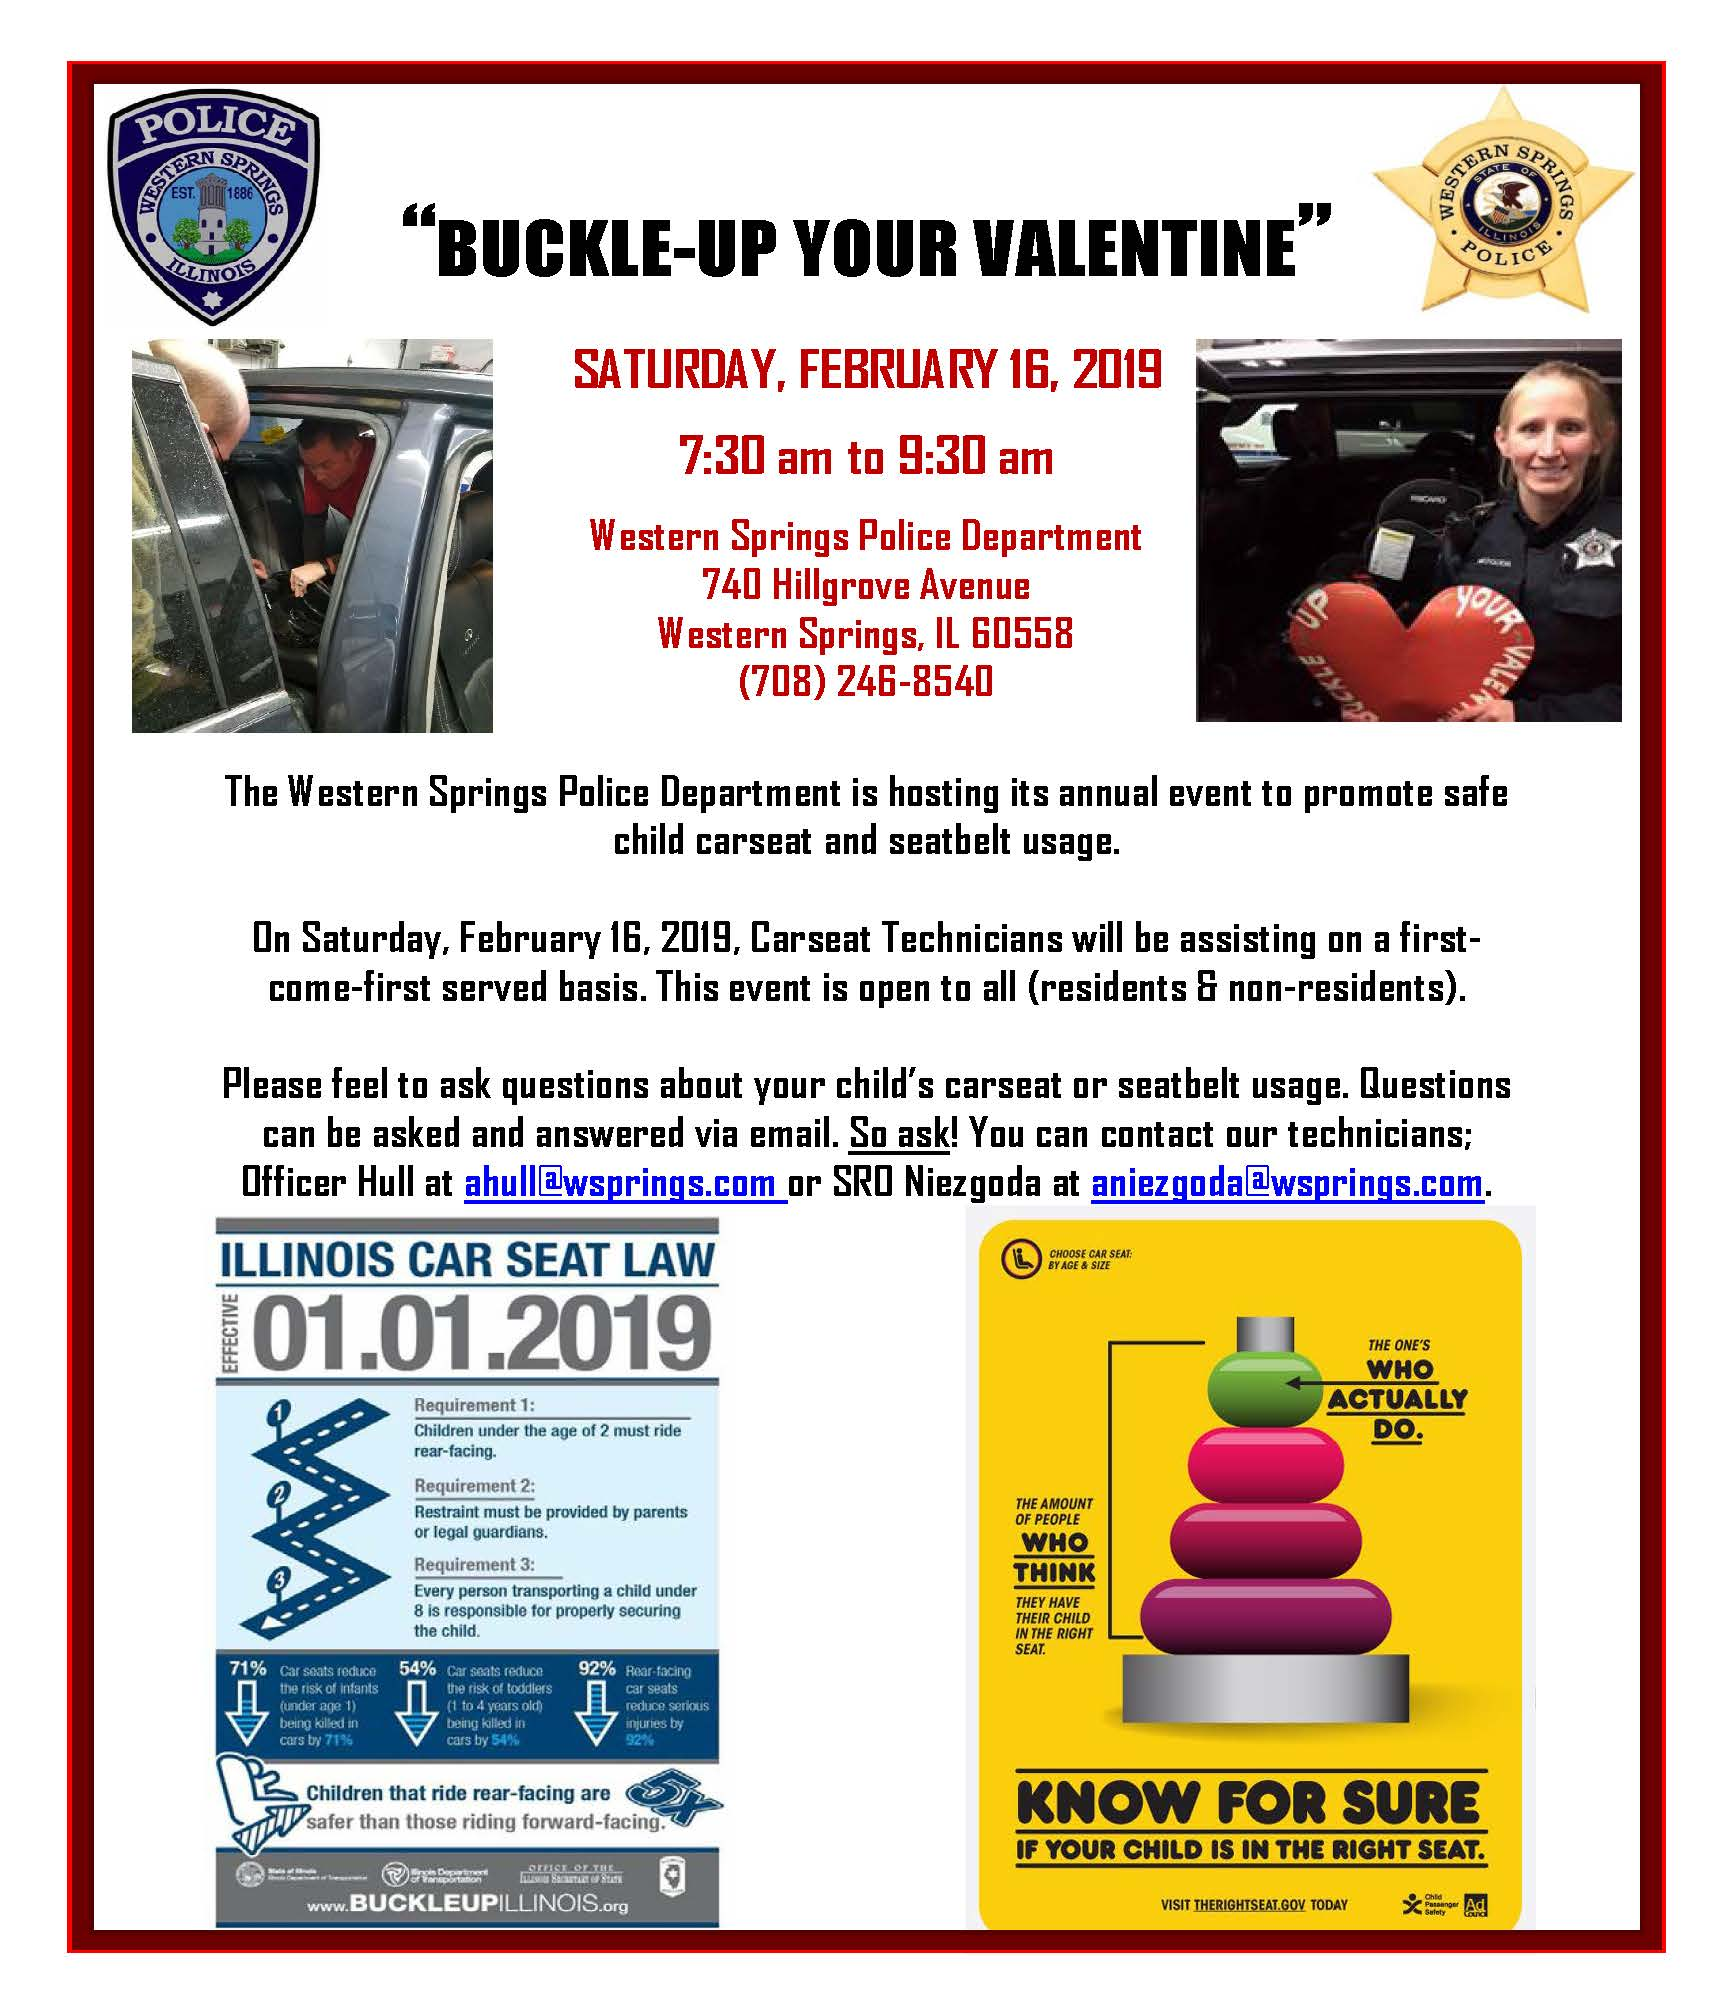 2019 BUCKLE UP YOUR Valentine FLYER (1)